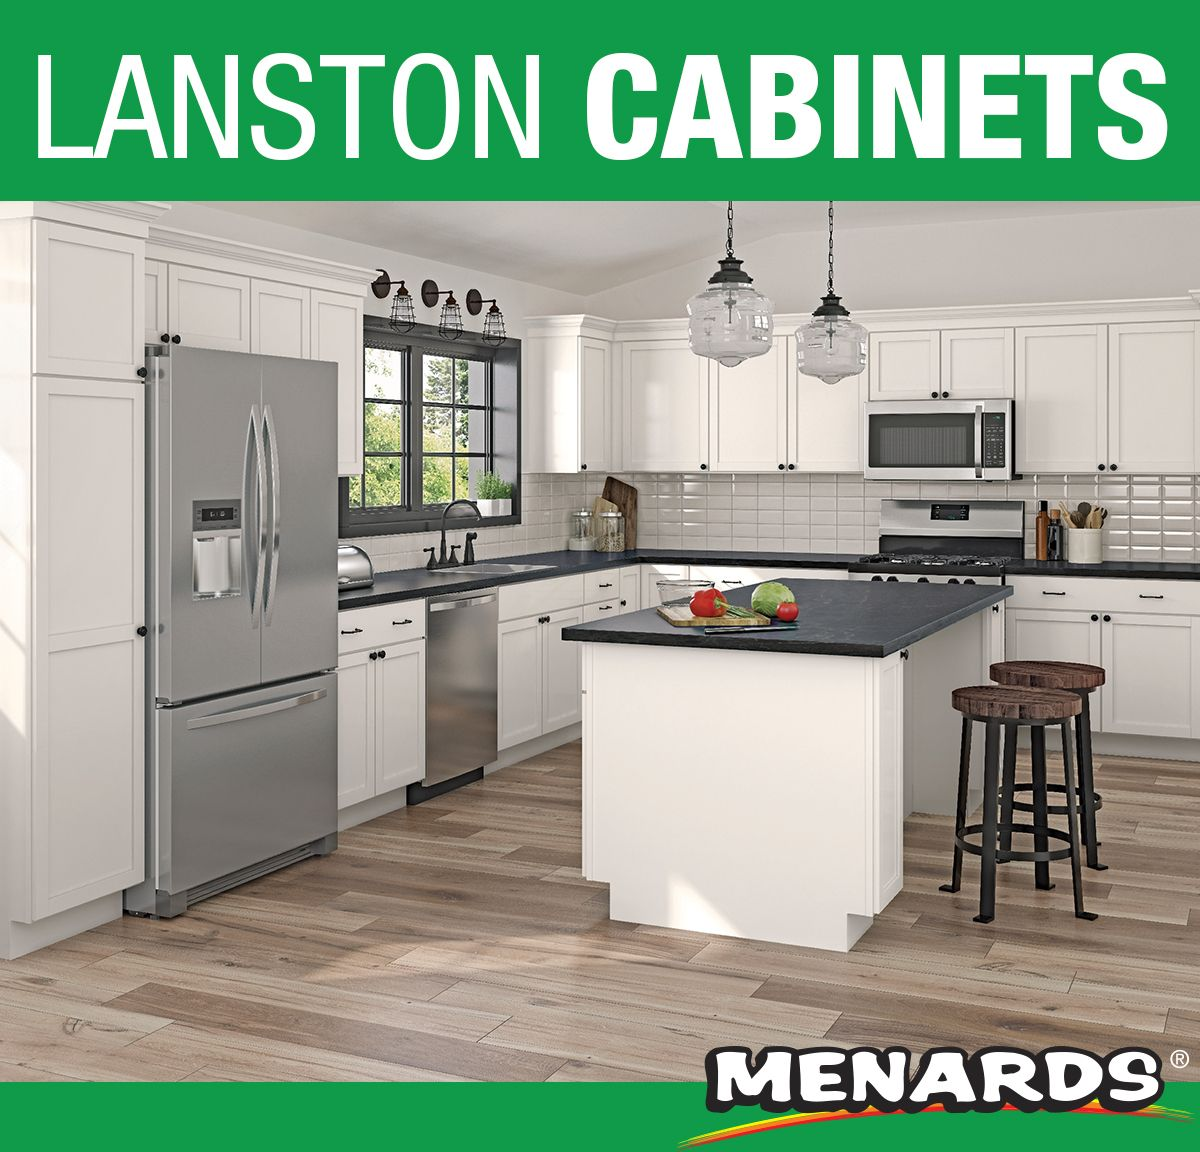 Furnish Your Home With The Quality Of Cardell Concepts Cabinetry This Lanston White Finish Kitchen Cabinet W Finish Kitchen Cabinets Cardell Cabinets Kitchen